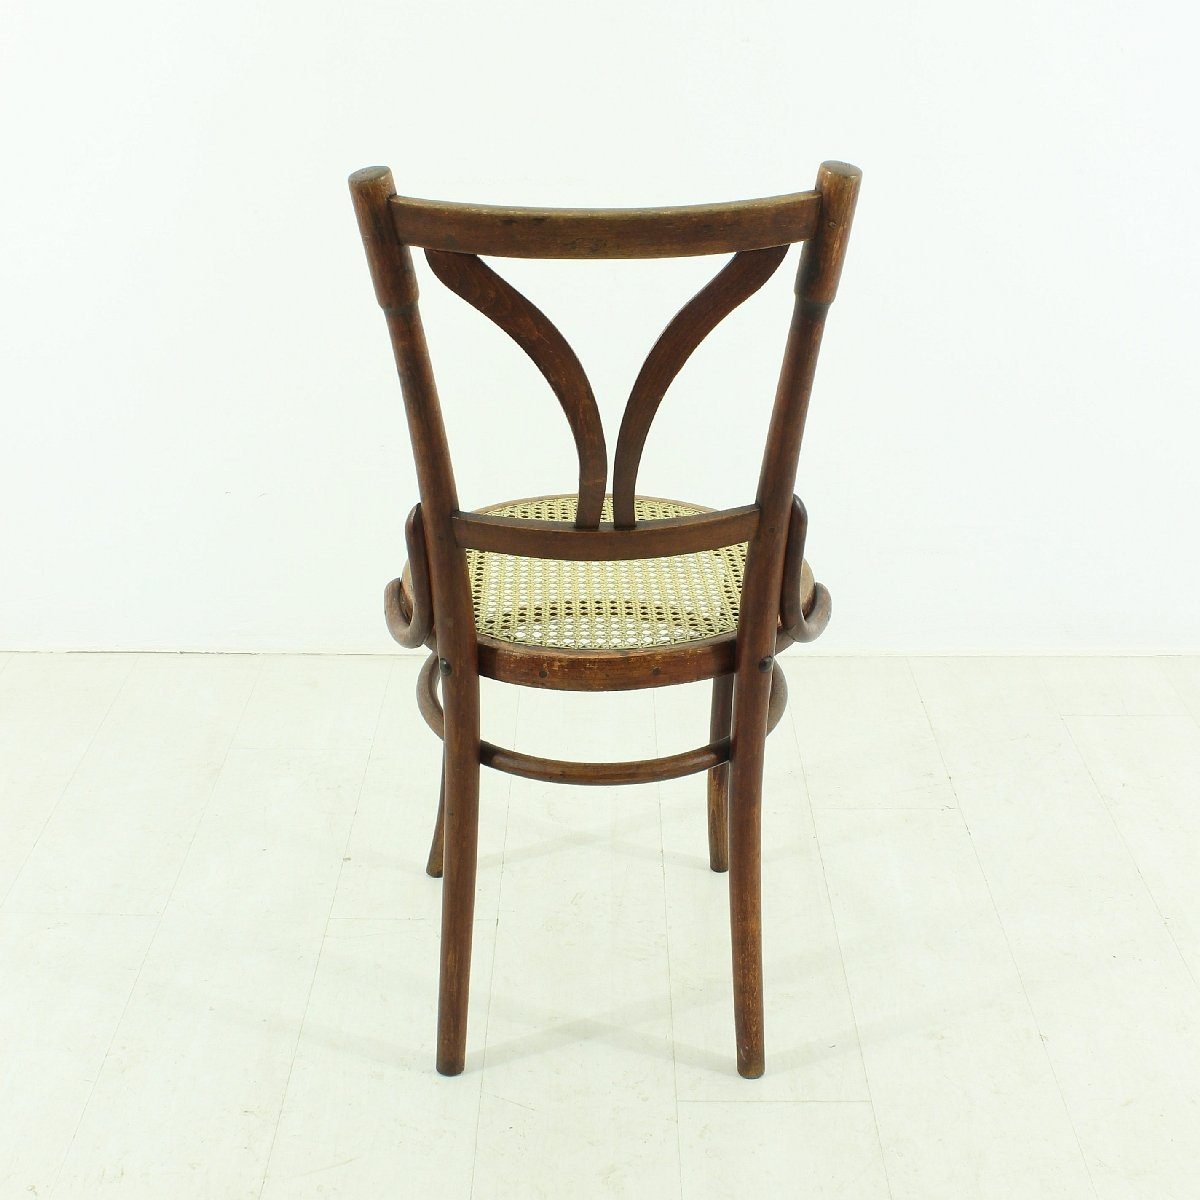 plastic bentwood bistro chairs chair accessories ikea antique set of 2 for sale at pamono